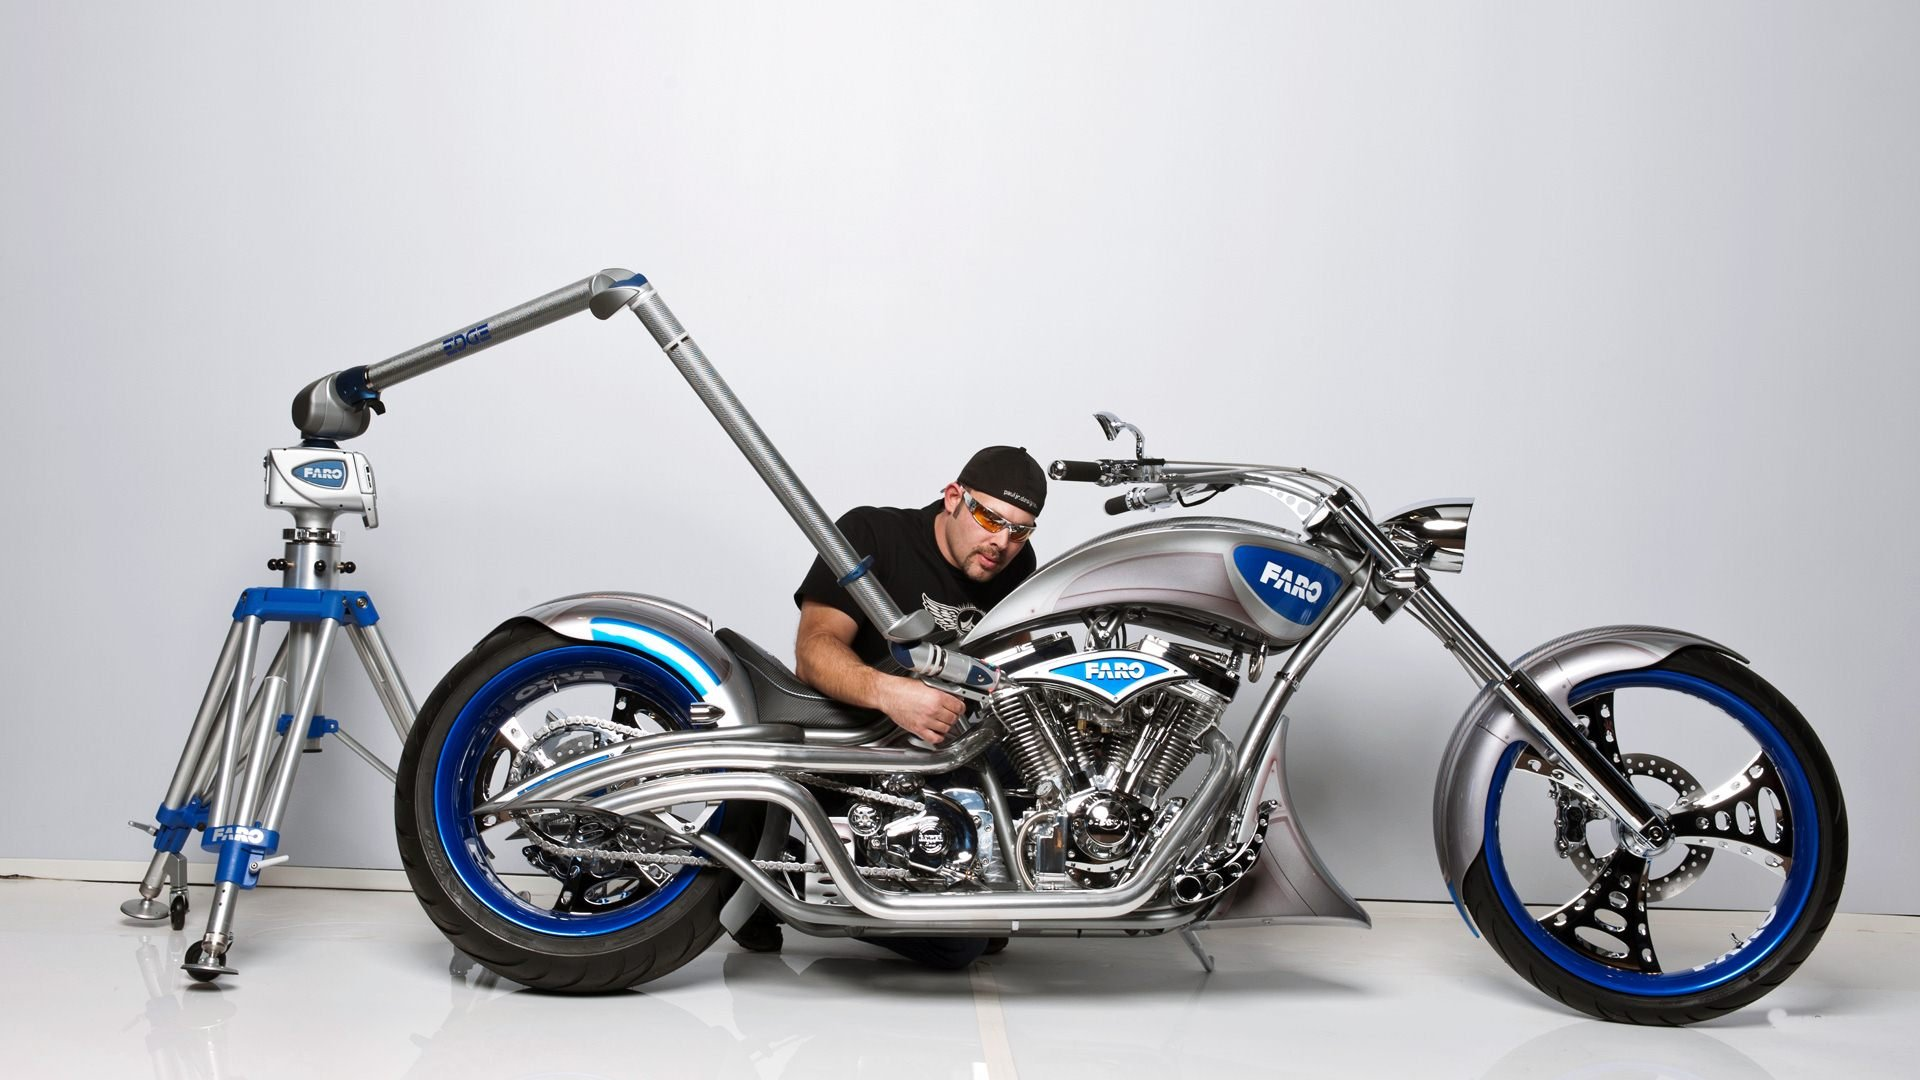 chopper motorcycles wallpaper - photo #29